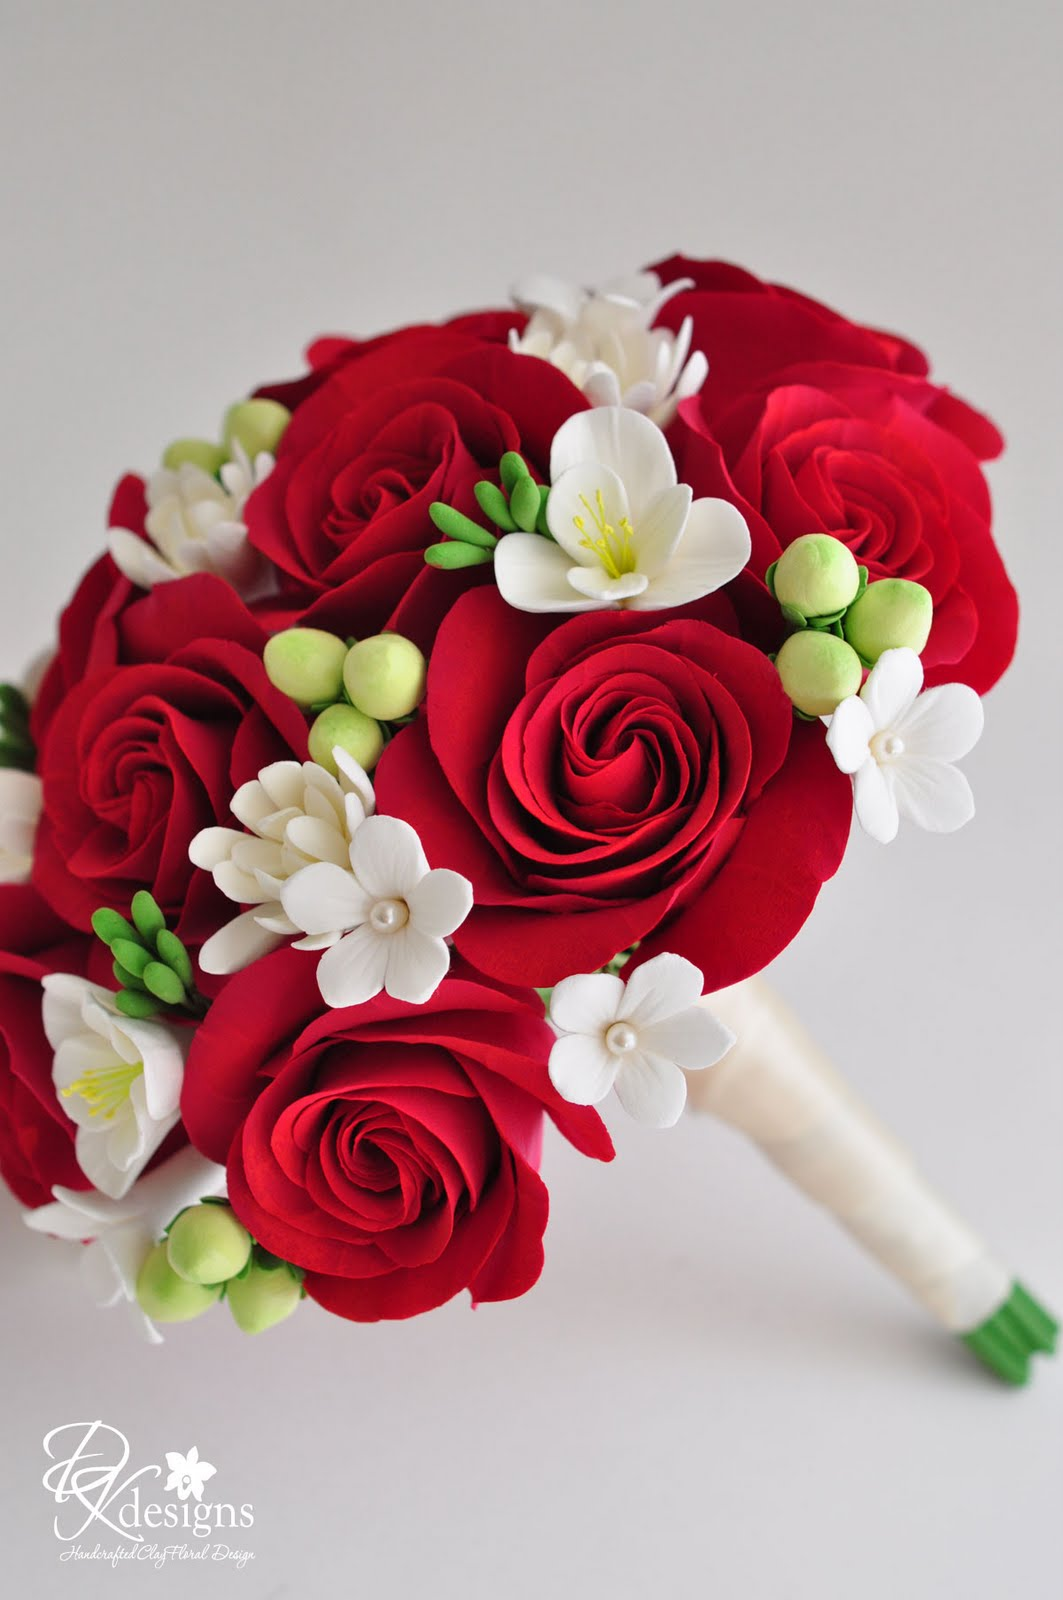 Red Roses Freesia Stephanotis Tuberose And Hipericum Berry